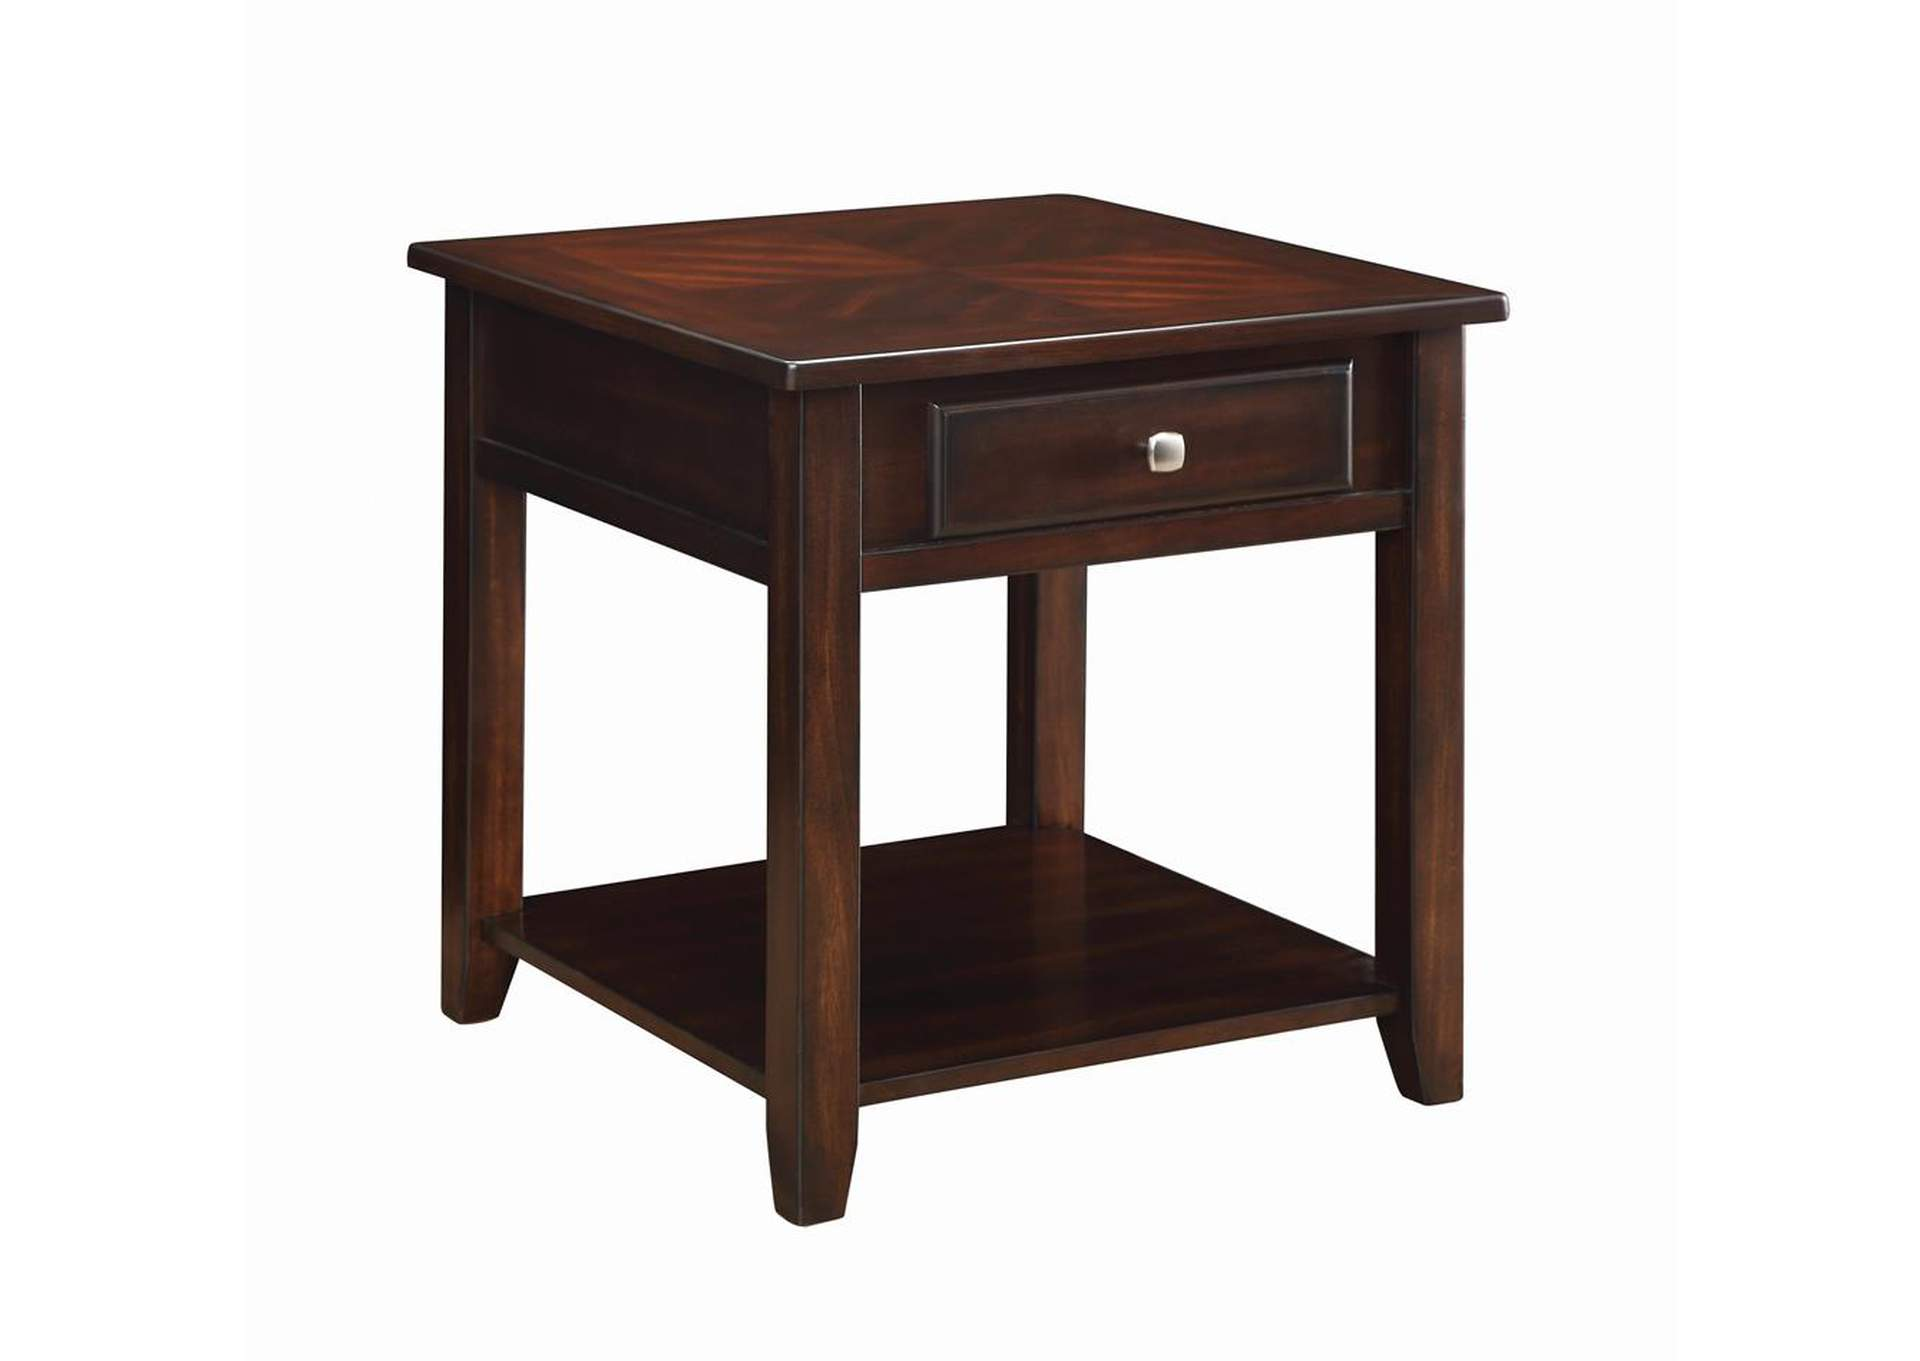 Walnut Transitional Walnut One-Drawer End Table,Coaster Furniture